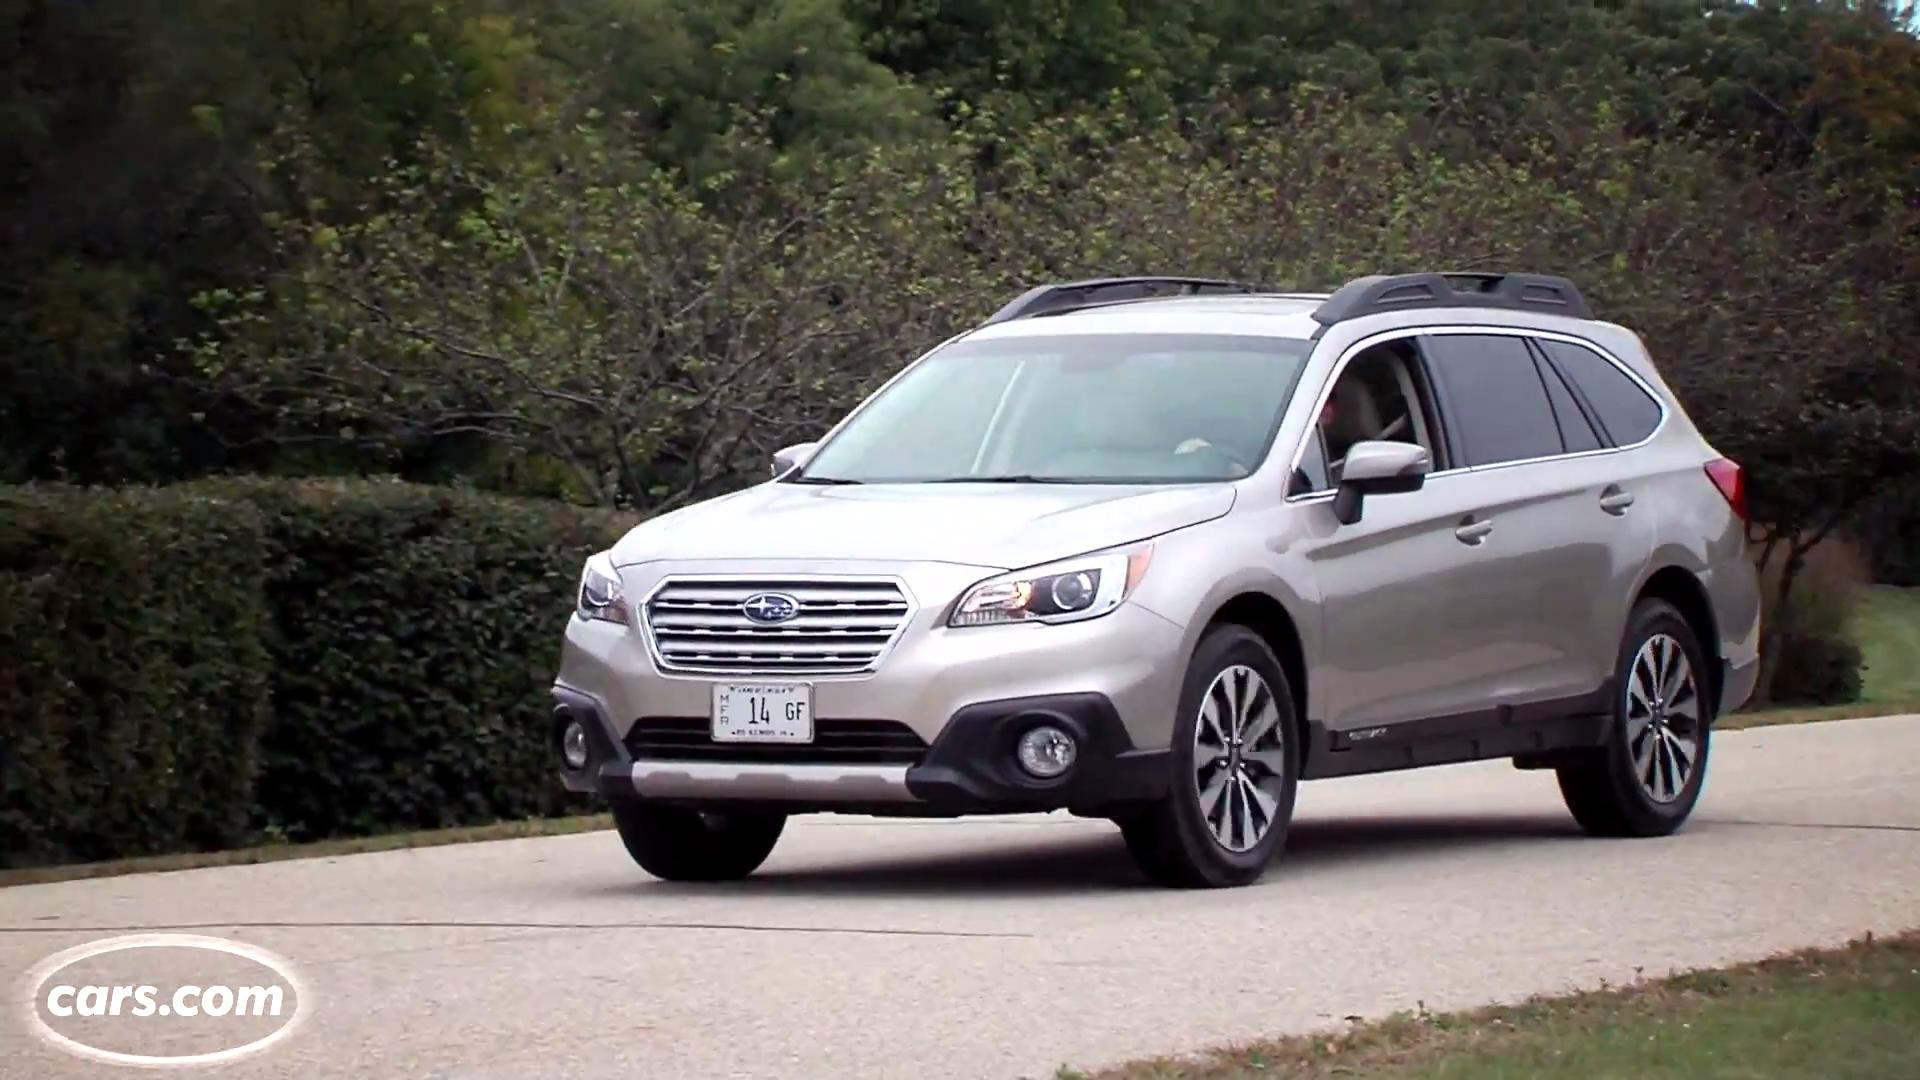 Subaru Outback IV Restyling 2012 - 2014 Station wagon 5 door #1